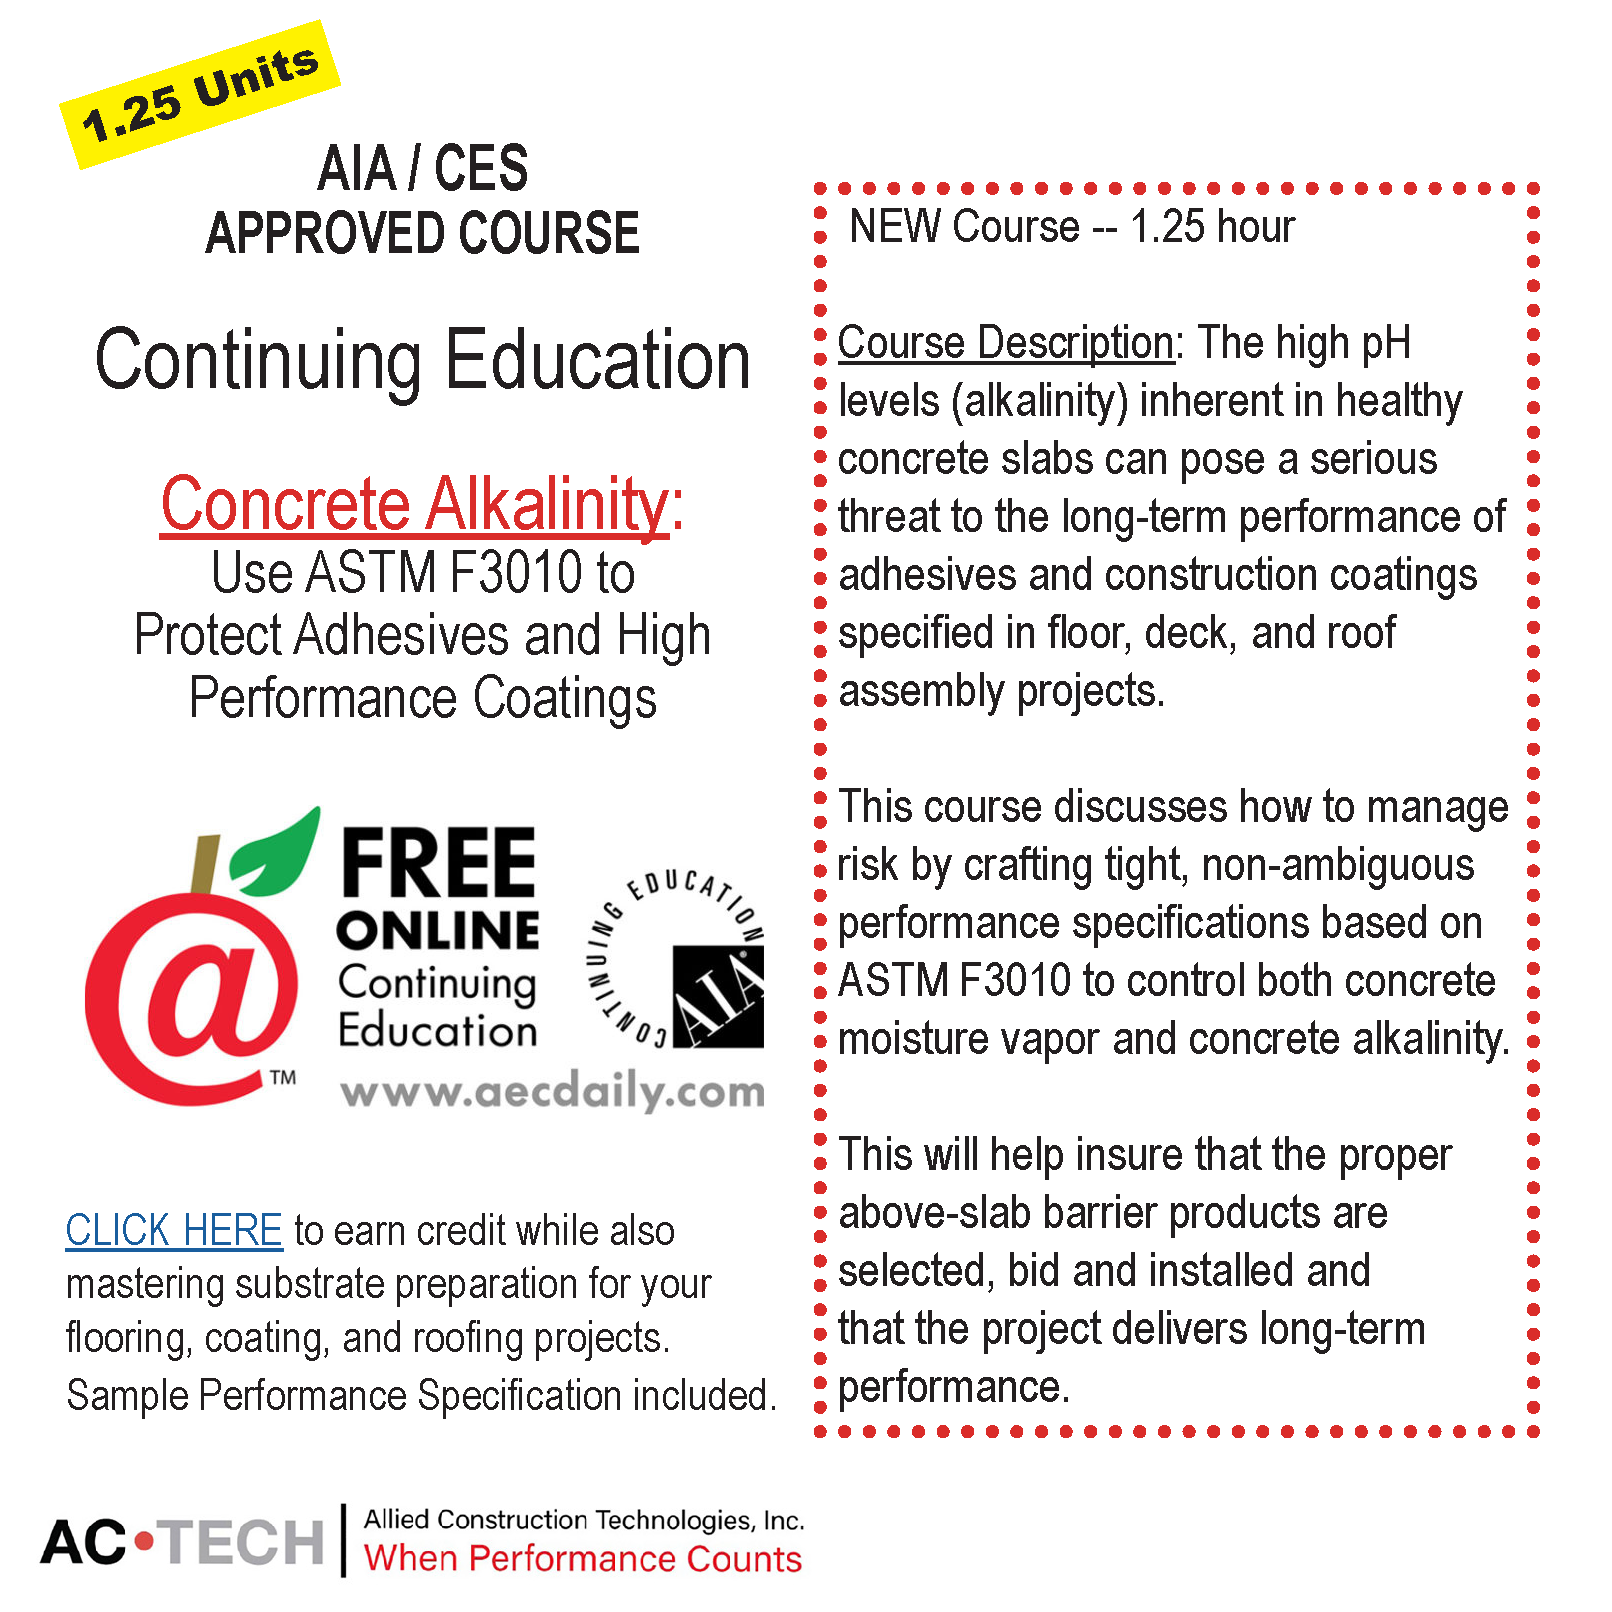 Actech actech support for astm f3010 compliant moisture available 247 through aecdaily here the course is free and qualifies for aia hsw state credit and many other association approvals falaconquin